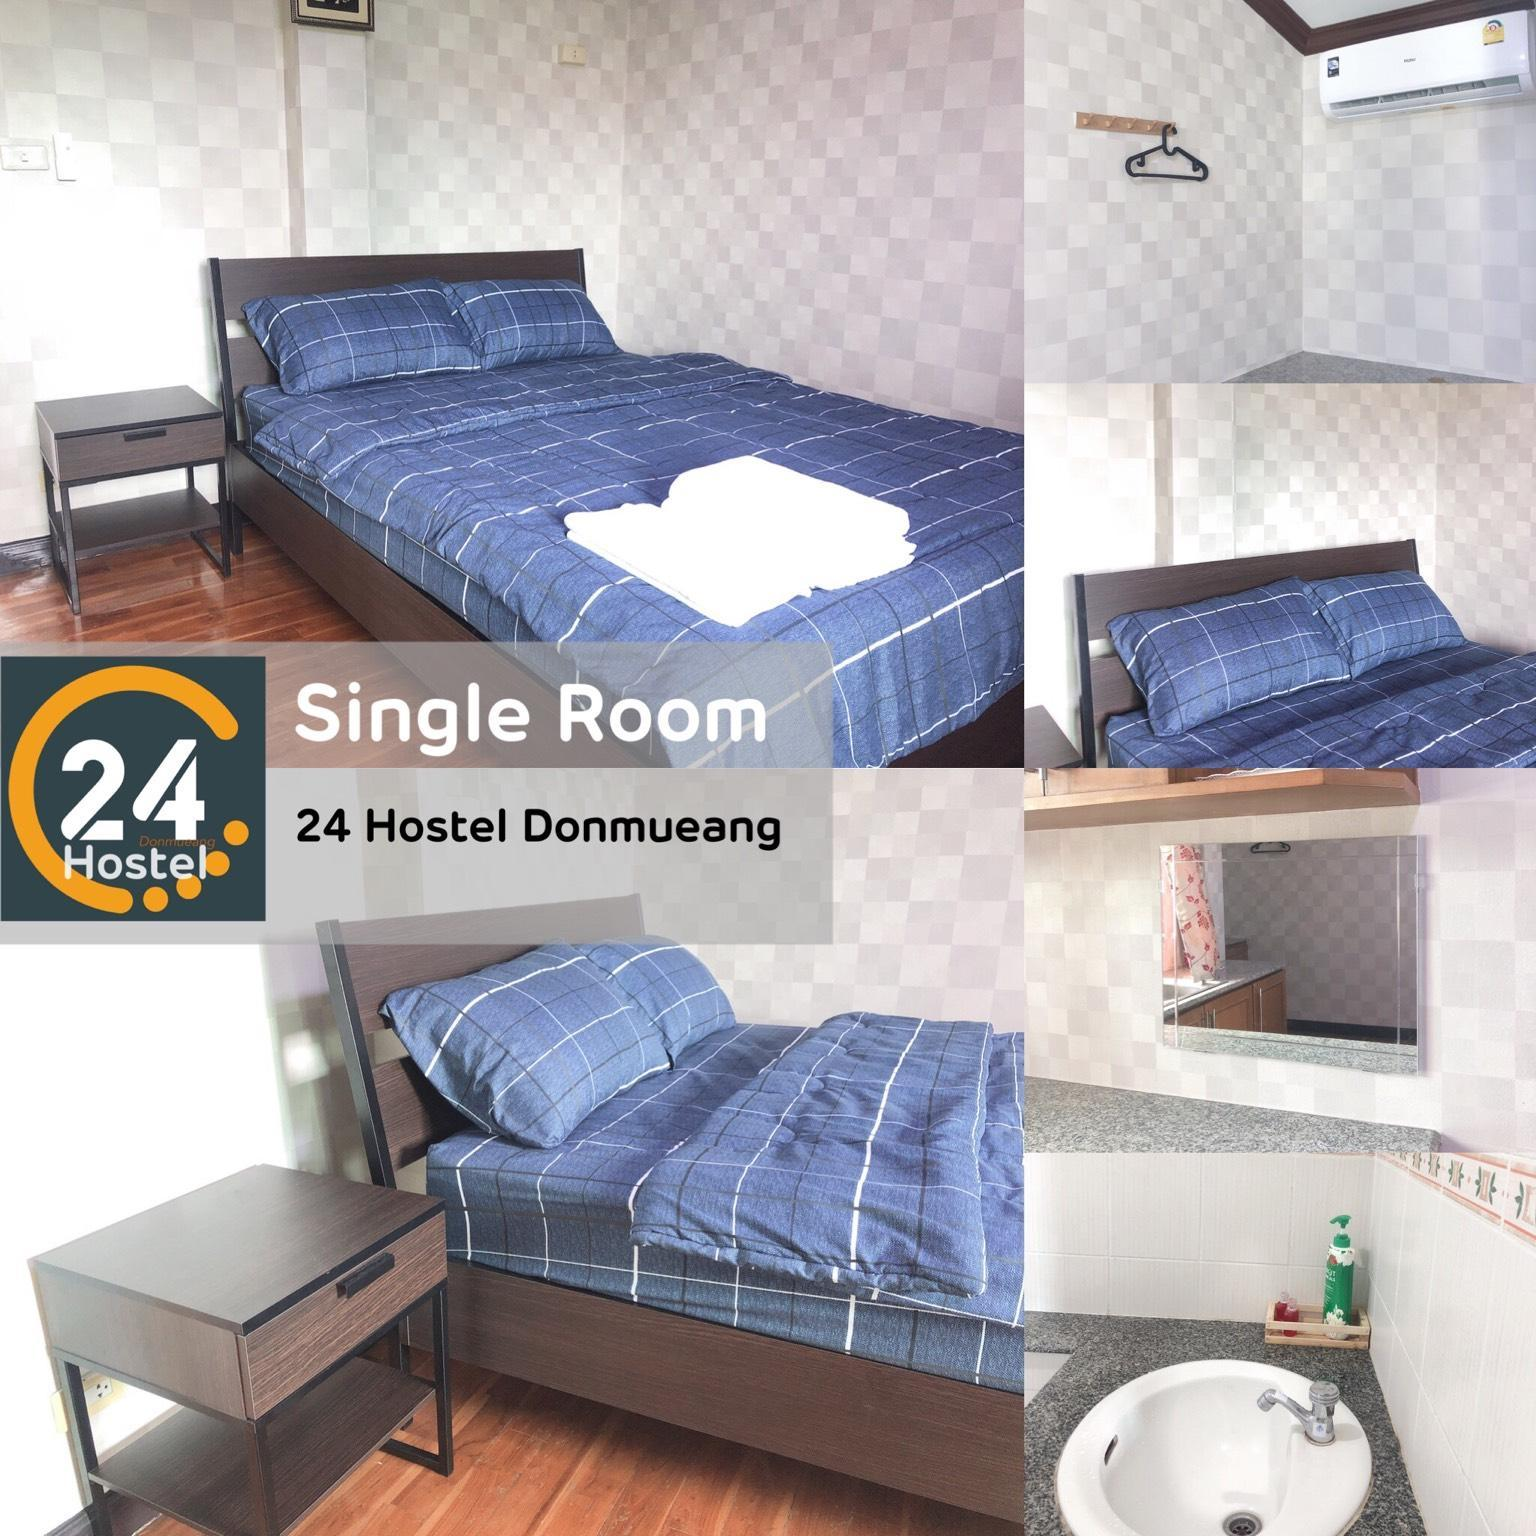 24 Hostel Donmueang  Single Room